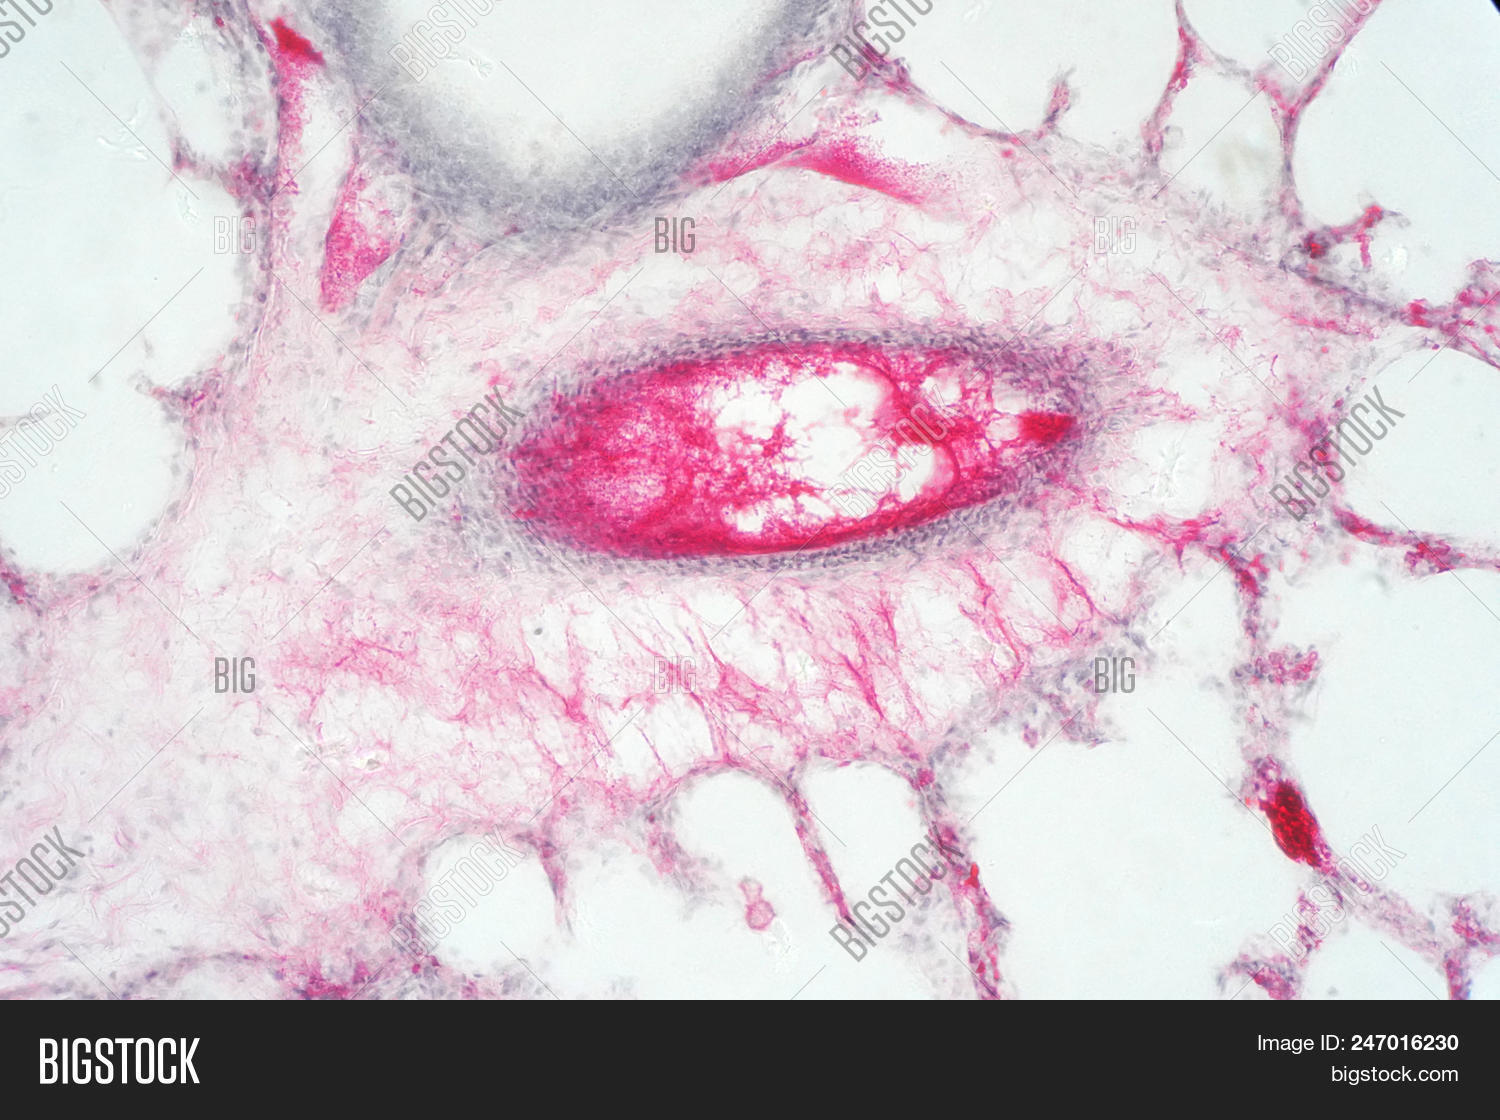 Human Lung Tissue Image Photo Free Trial Bigstock